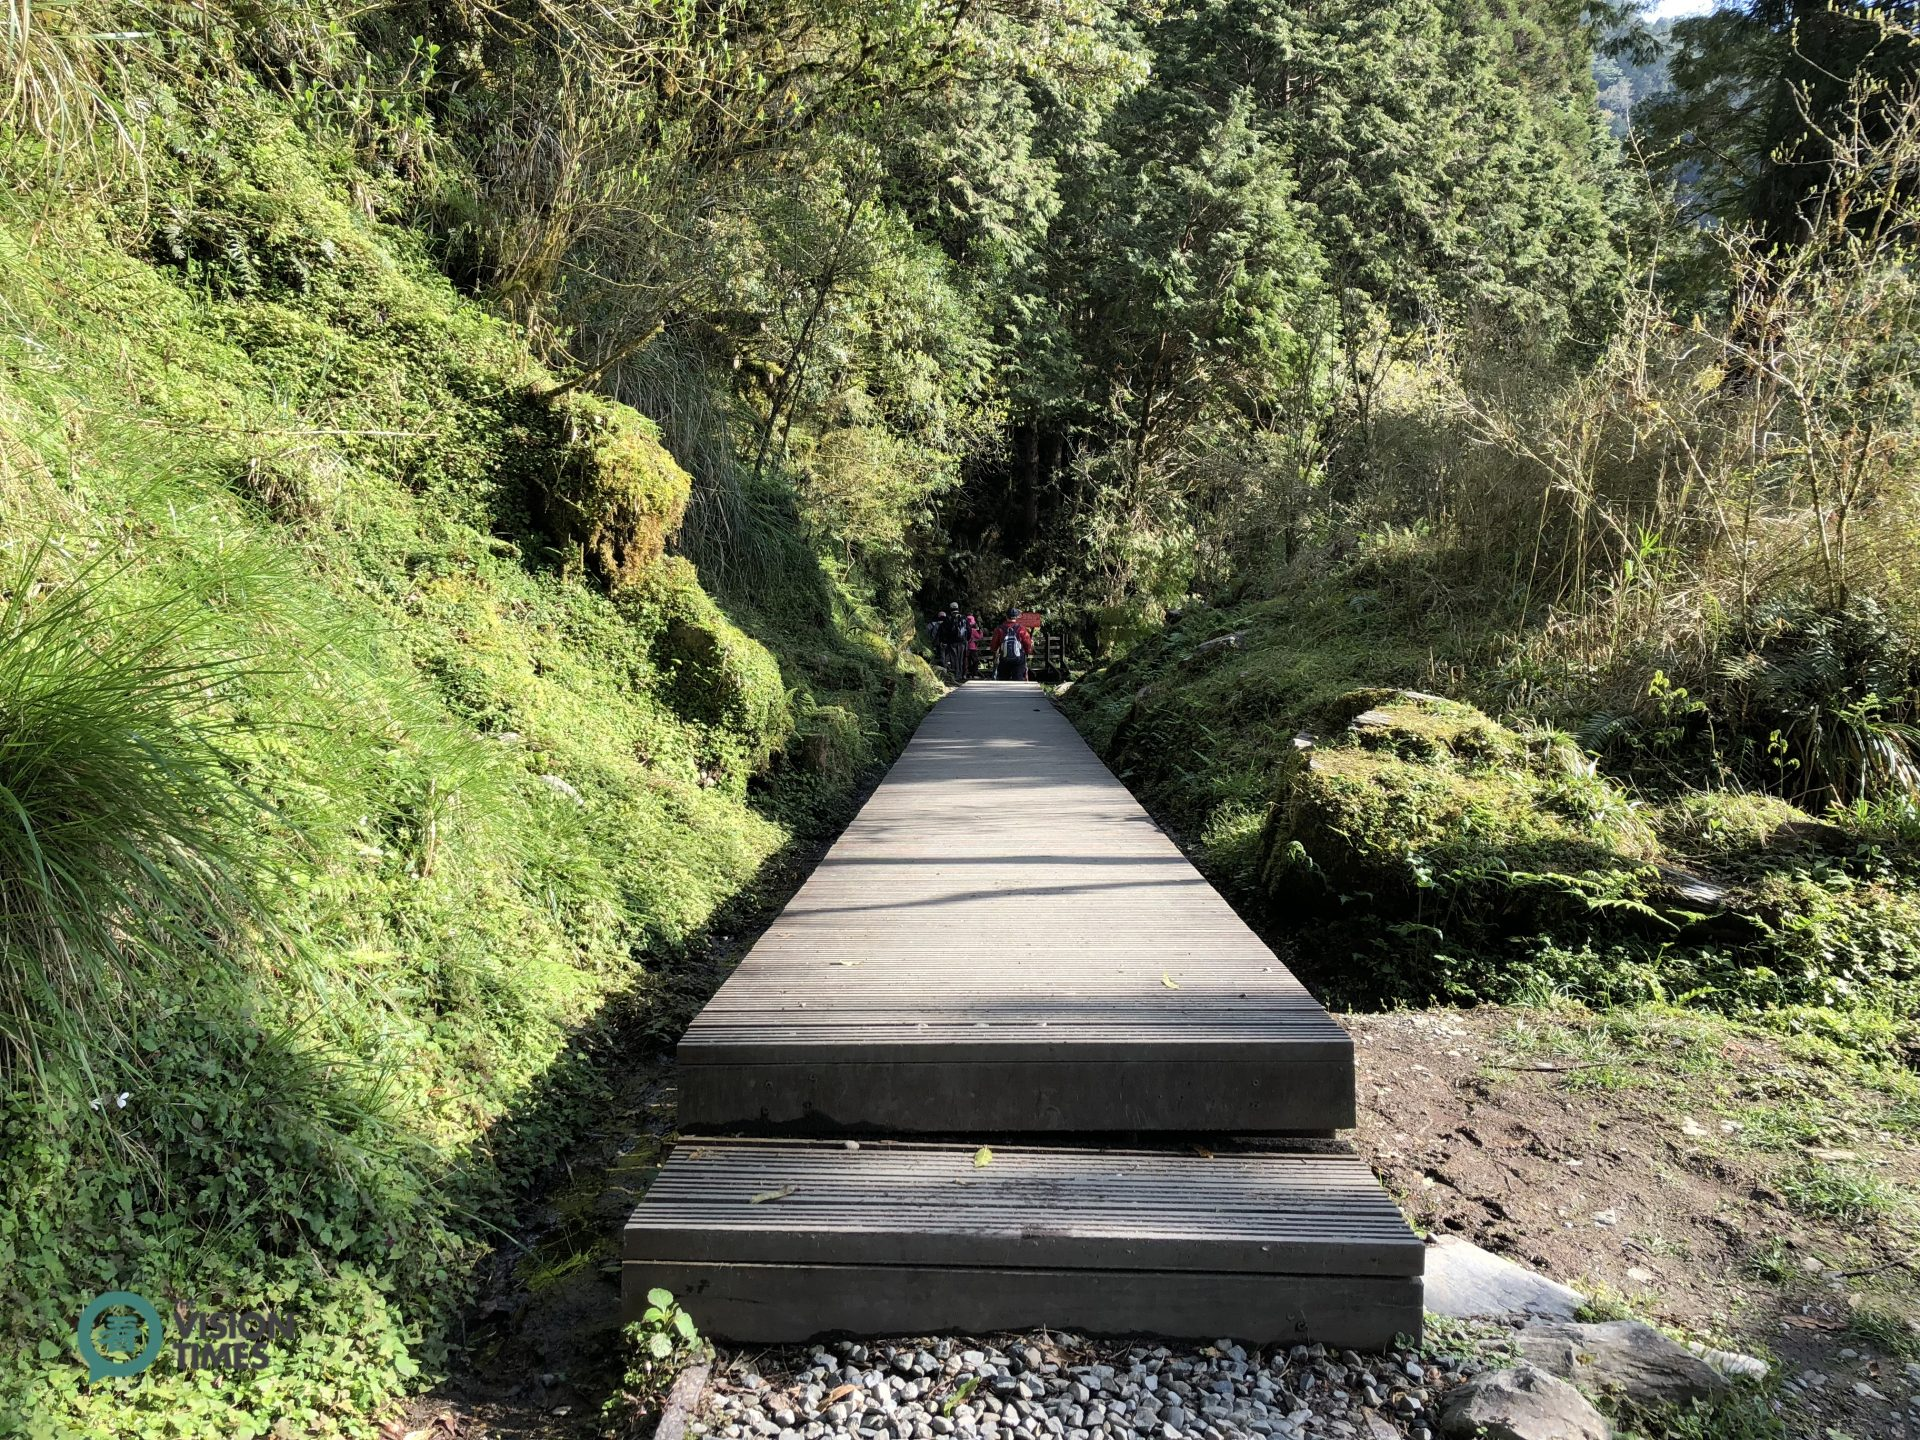 Jiancing Historic Trail is built by ecological engineering method to keep intact of the habitat and environment. )Image: Billy Shyu / Vision Times)